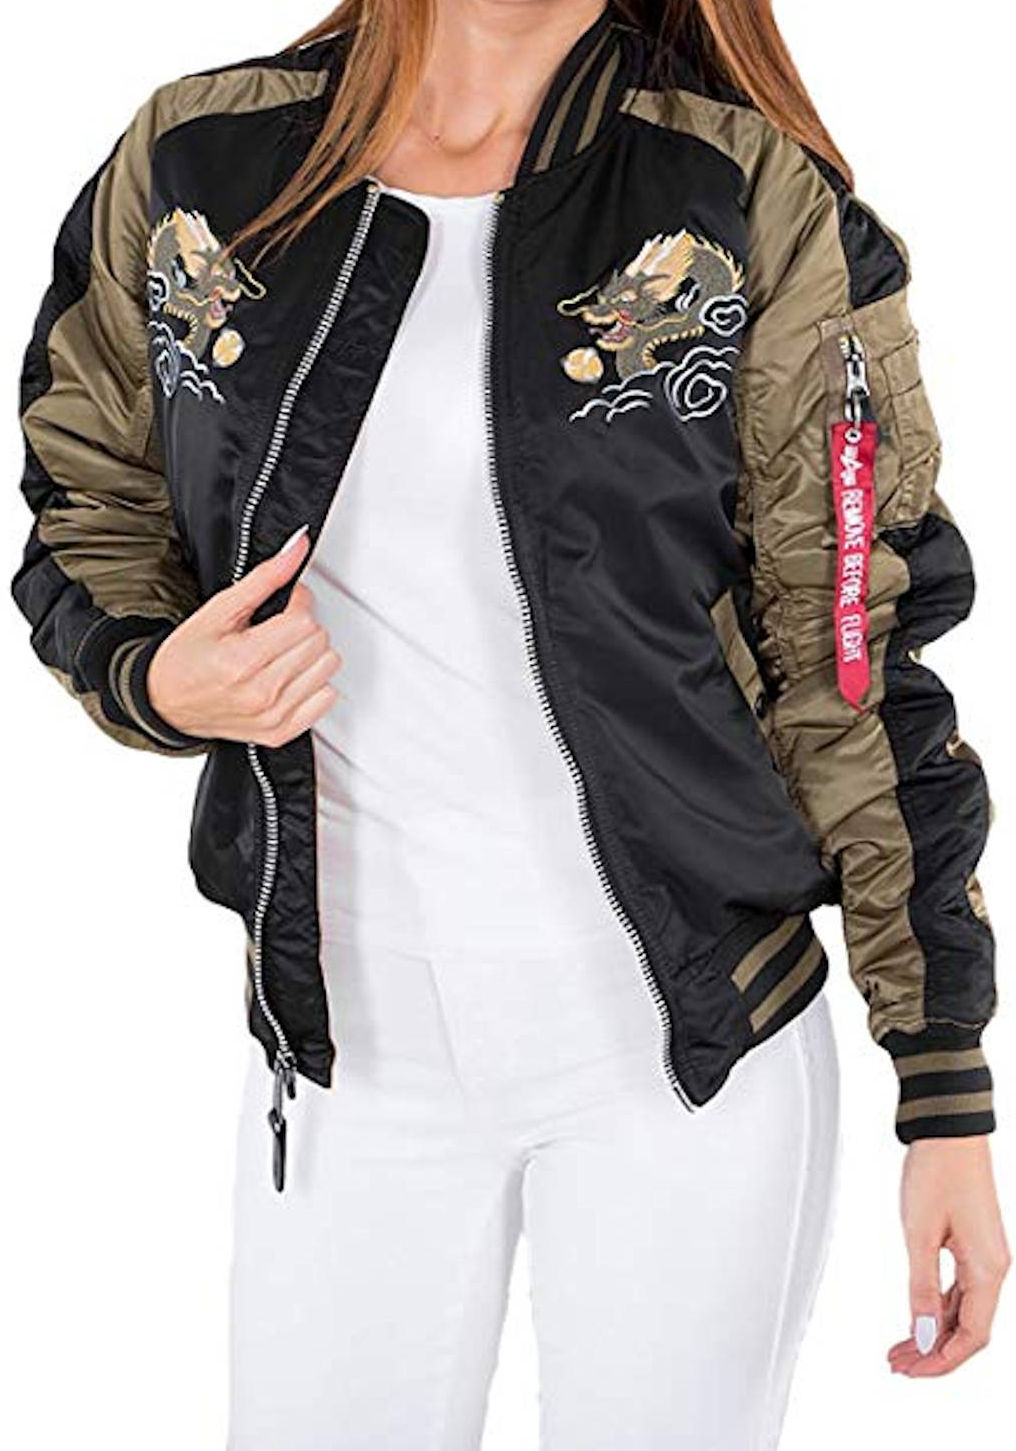 Details about Alpha Industries Japan Dragon Wmn Women's Bomber Jacket Aviator Jacket 178012 show original title